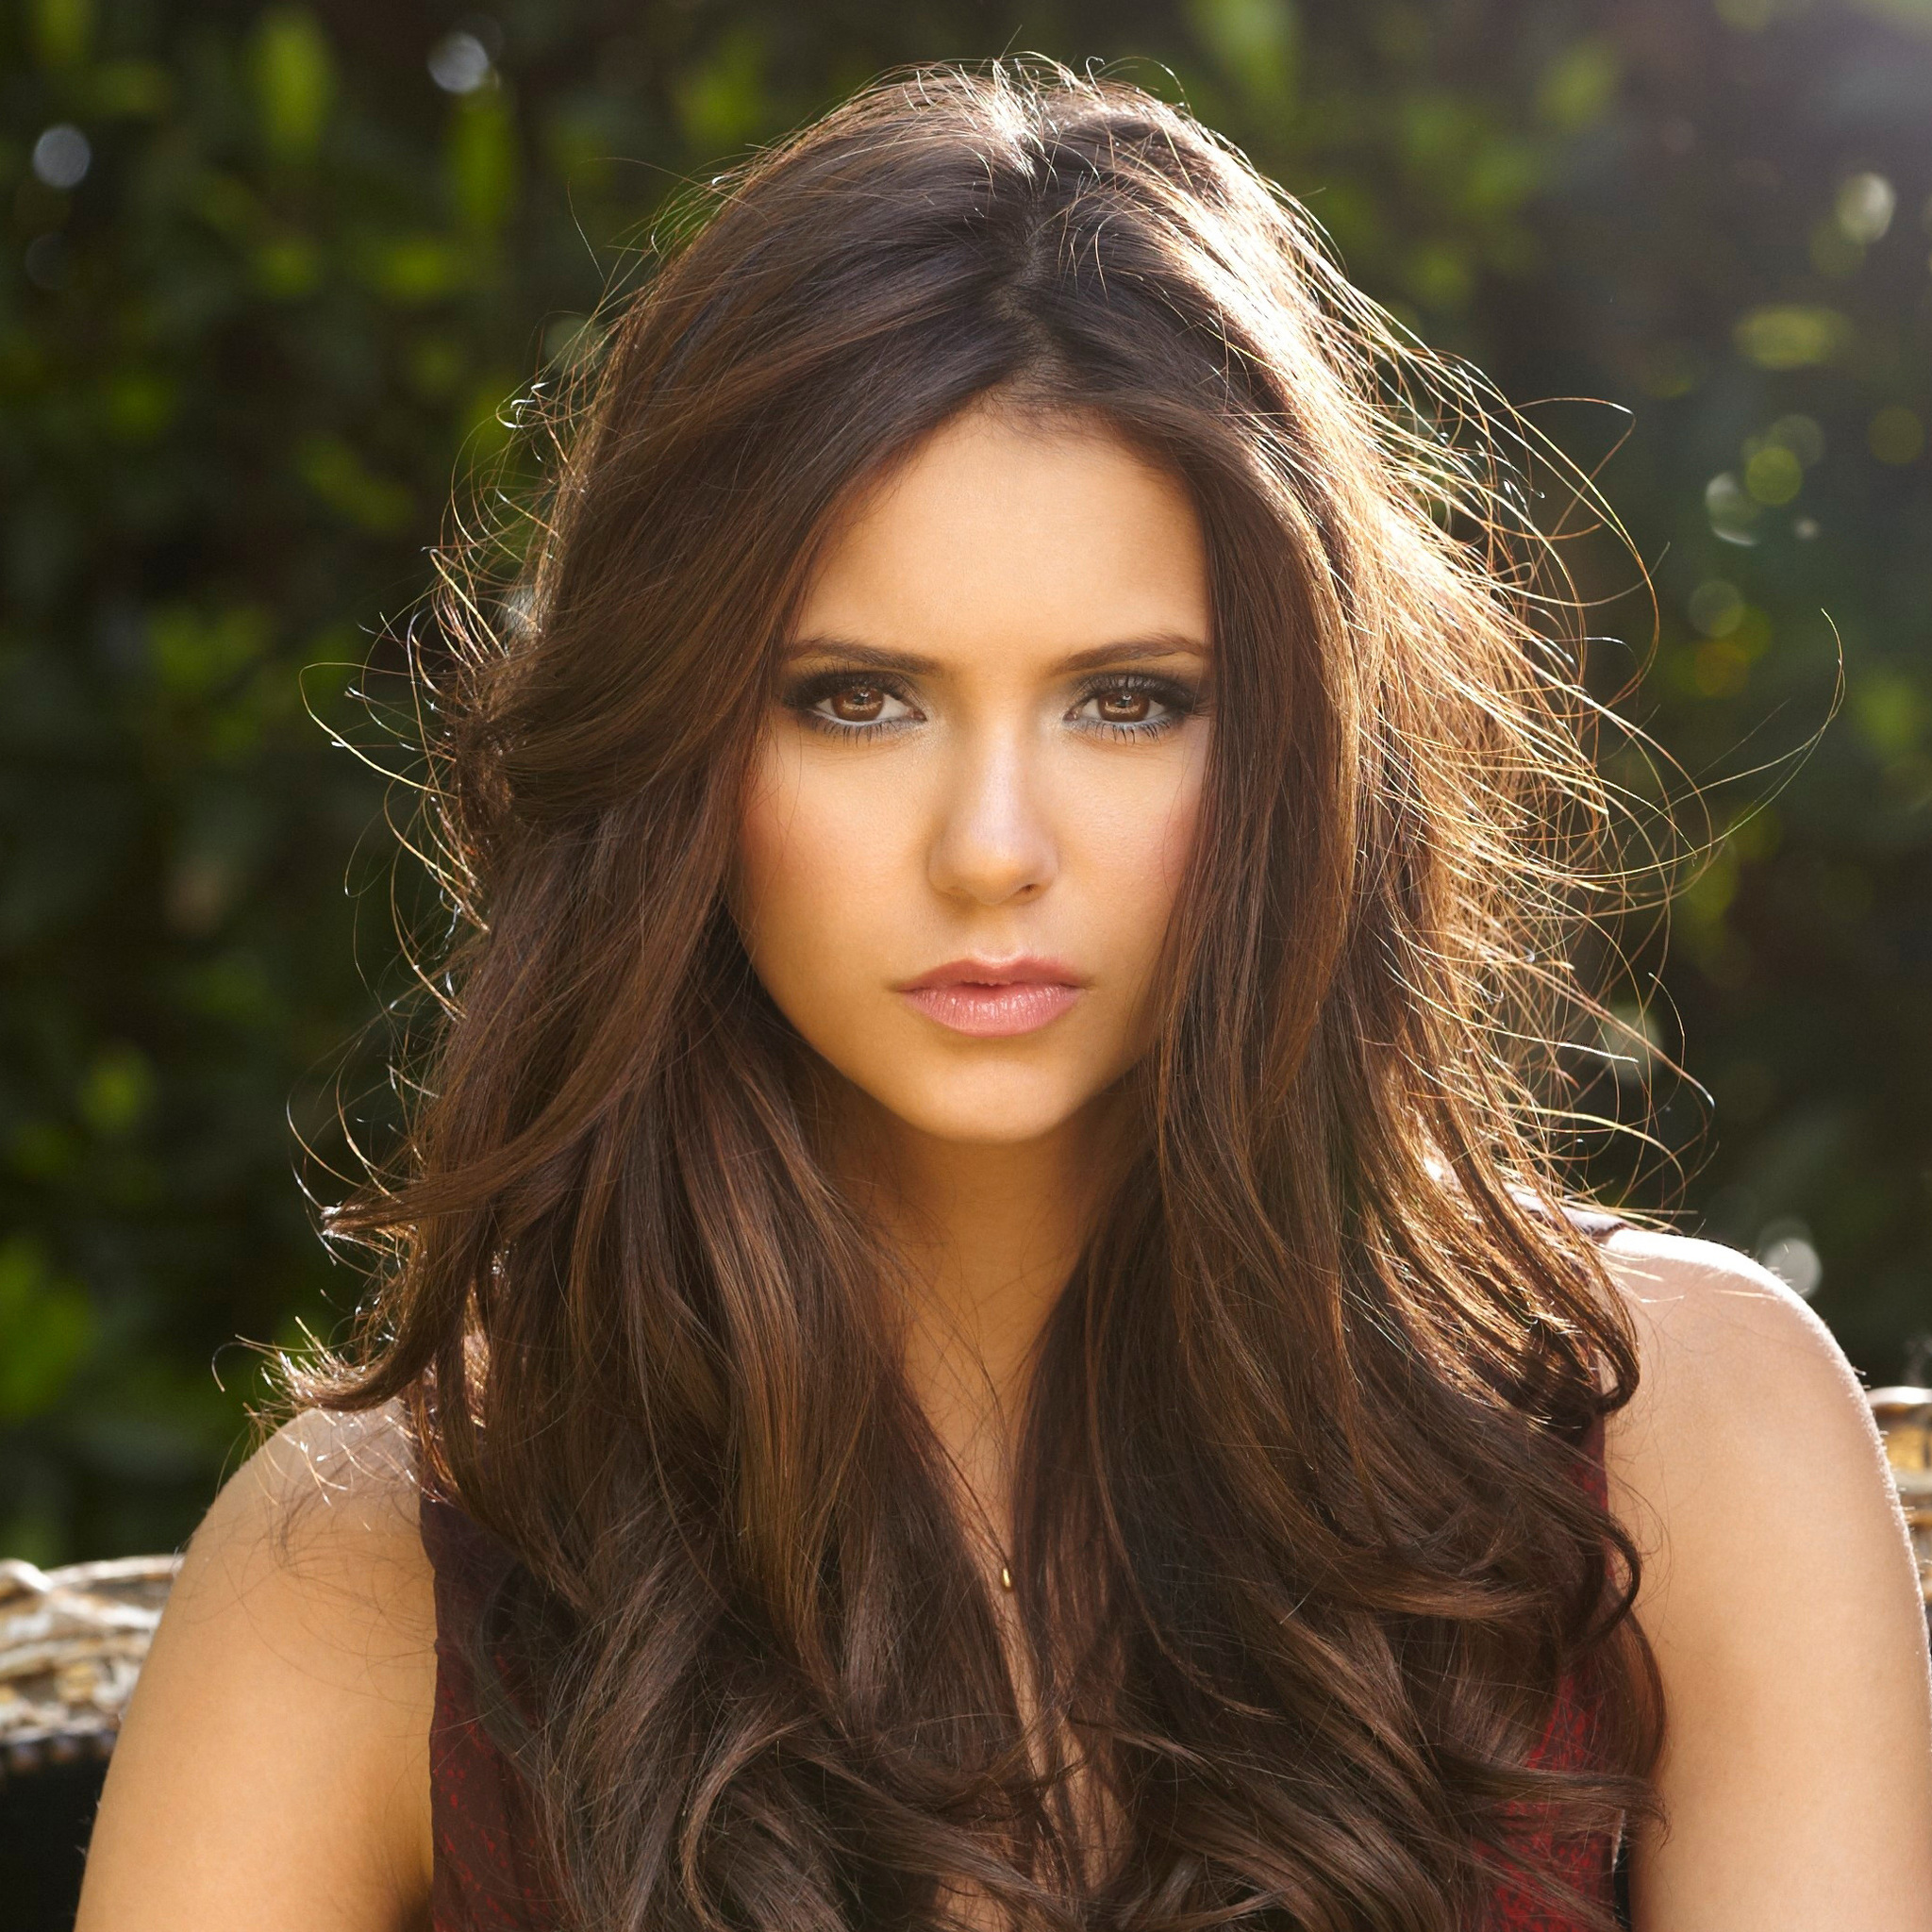 Nina Dobrev Wallpaper: 2048x2048 Nina Dobrev Ultra Hd 4k Ipad Air HD 4k